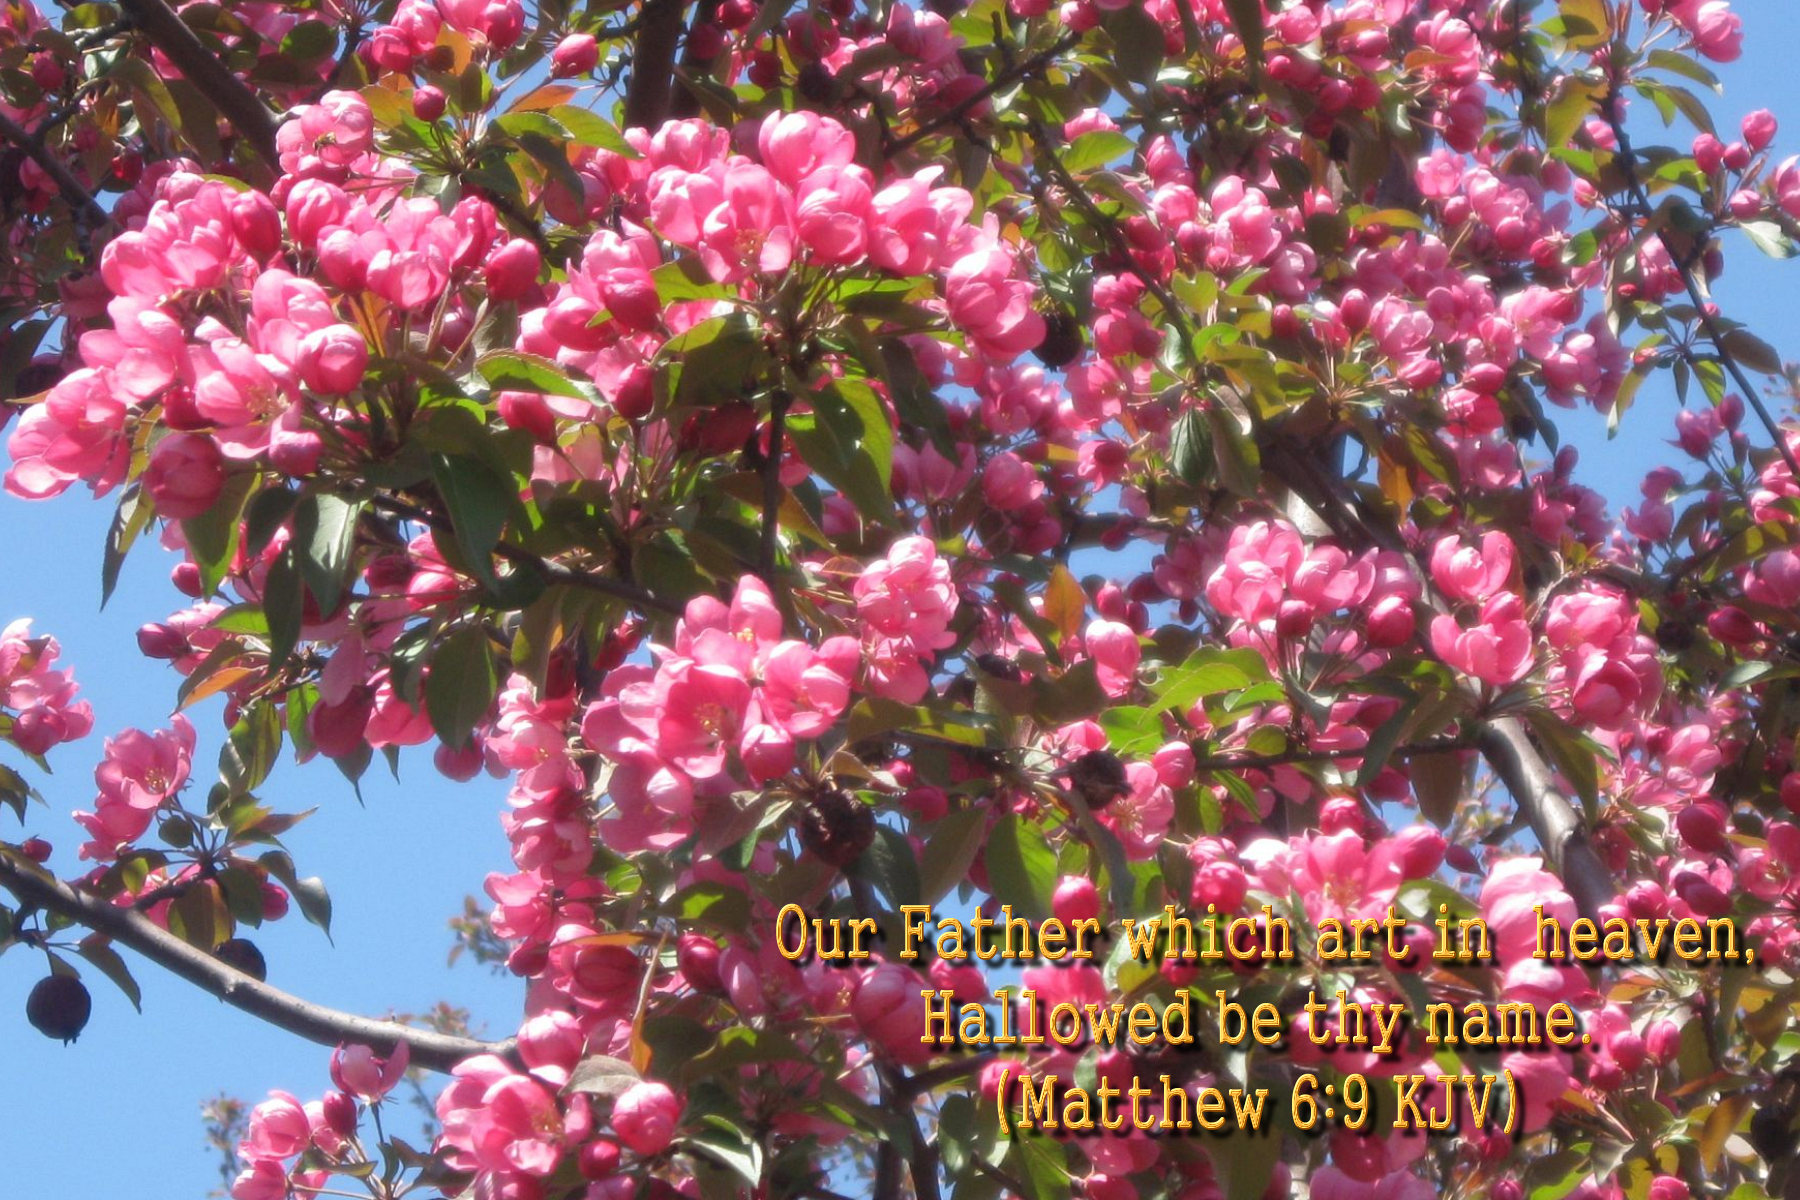 flower blossom wallpaper scripture - photo #1